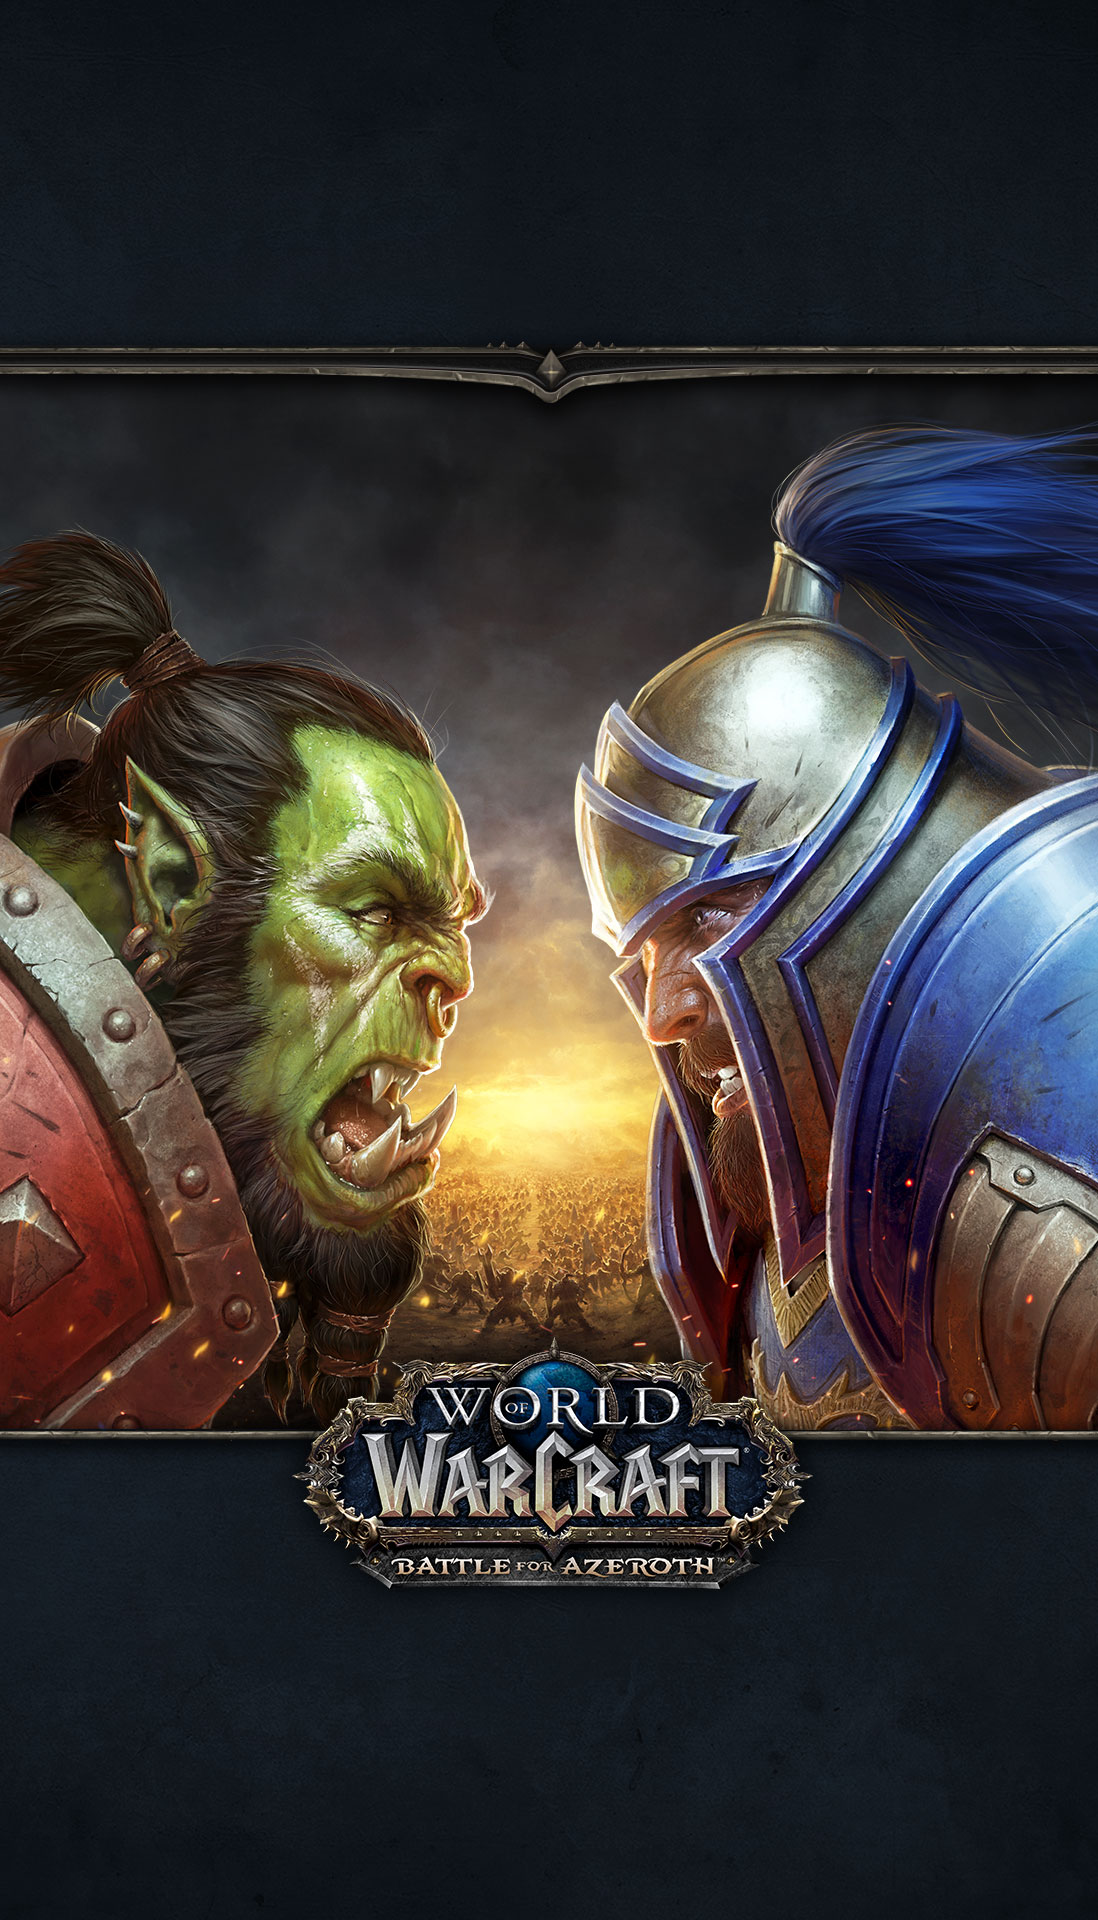 World Of Warcraft Battle For Azeroth 2018 Promotional Art